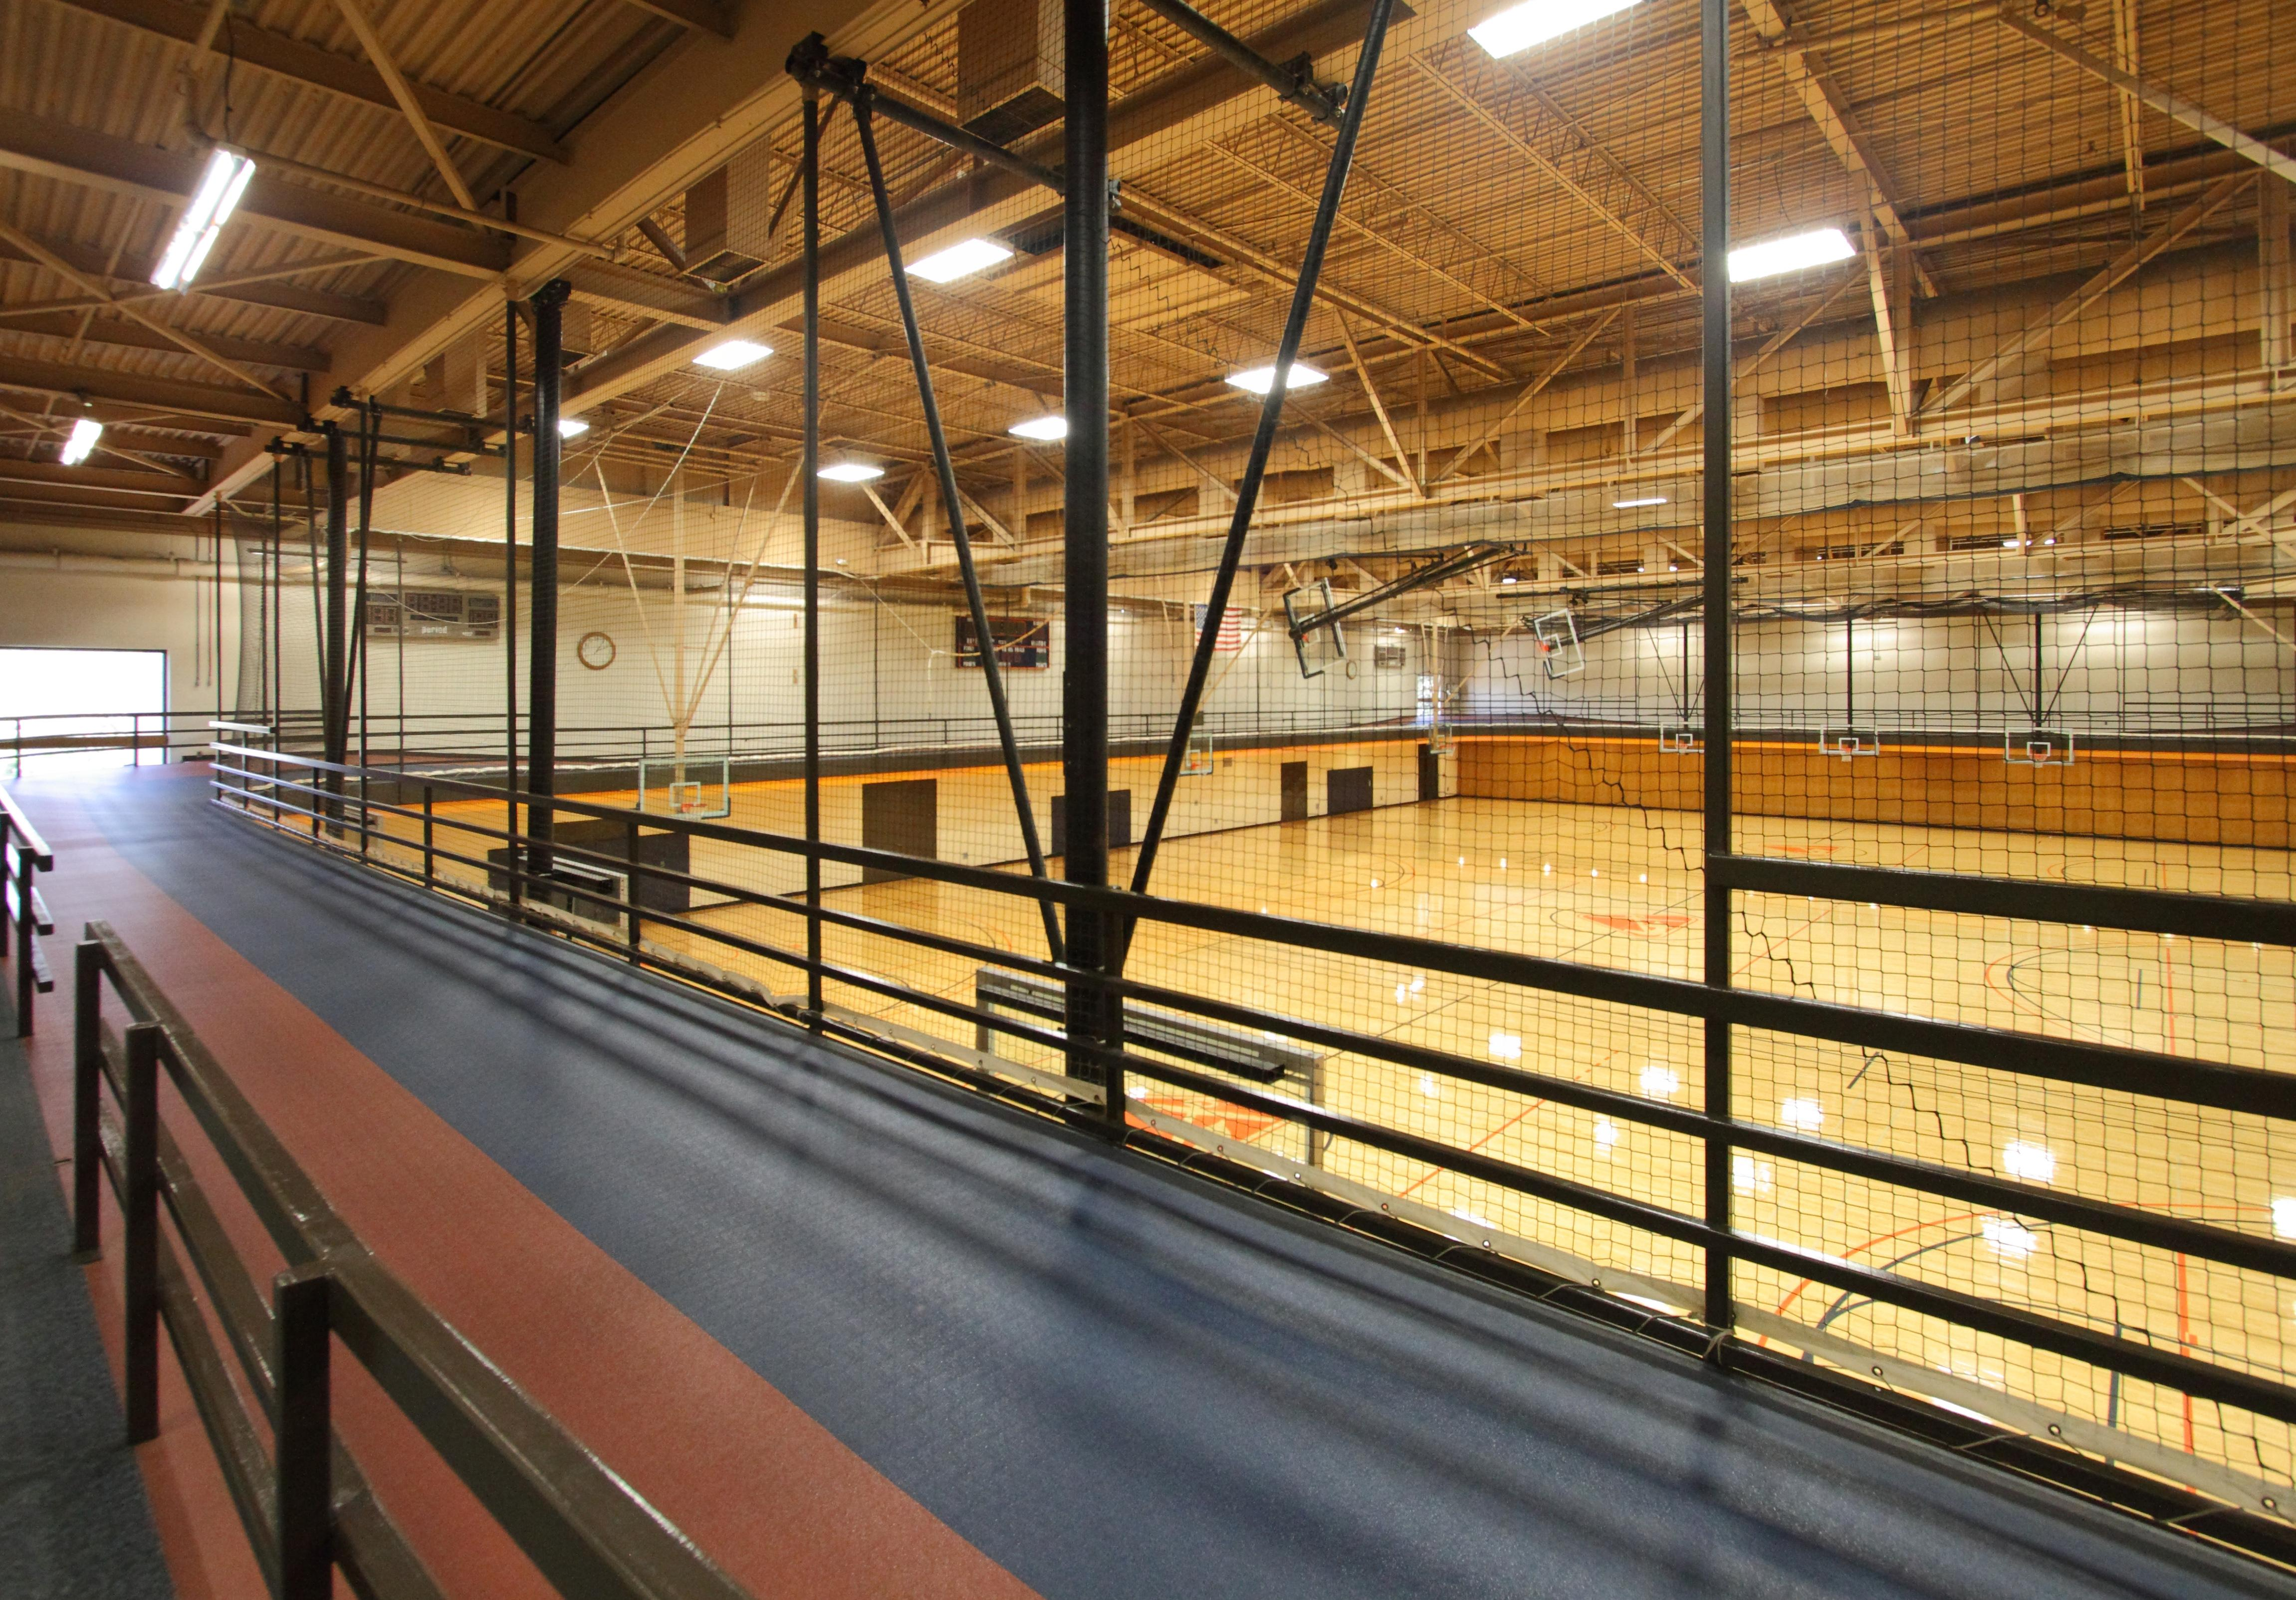 The 1/10 mile indoor track overlooks the basketball/volleyball courts.